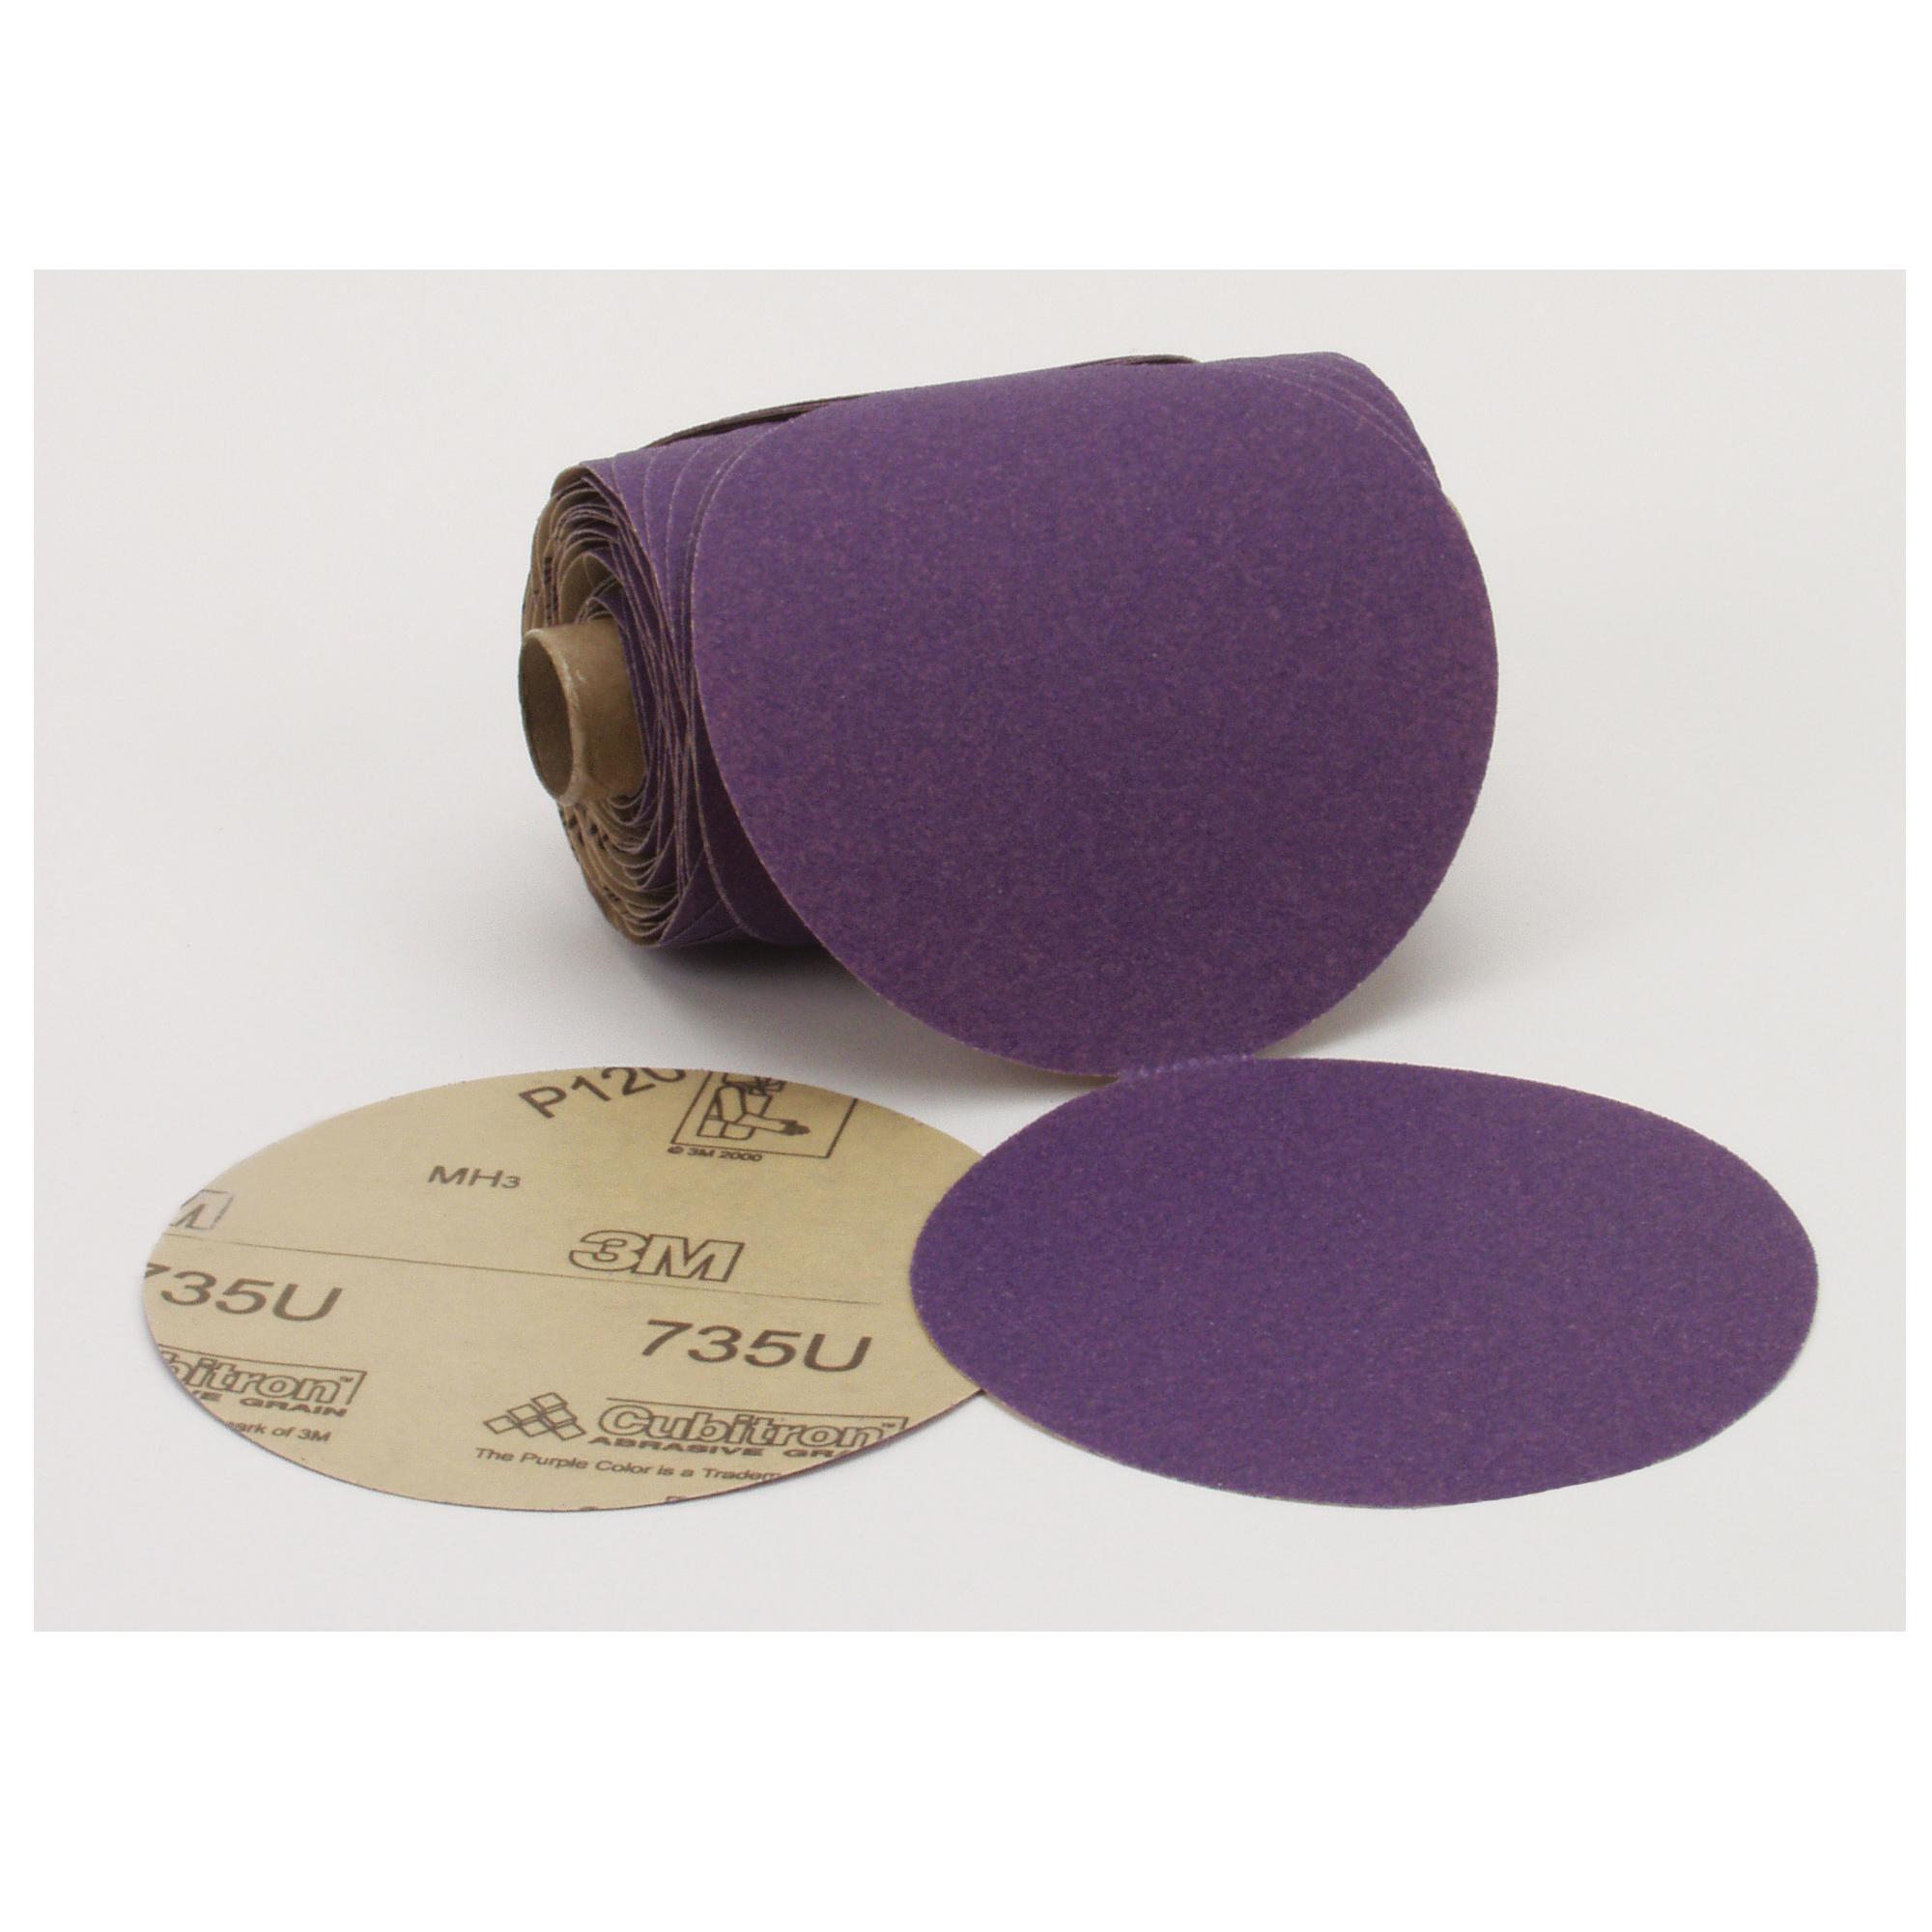 Stikit™ 051111-51231 Open Coated PSA Abrasive Disc Roll, 5 in Dia, P120 Grit, Fine Grade, Ceramic Abrasive, Paper Backing